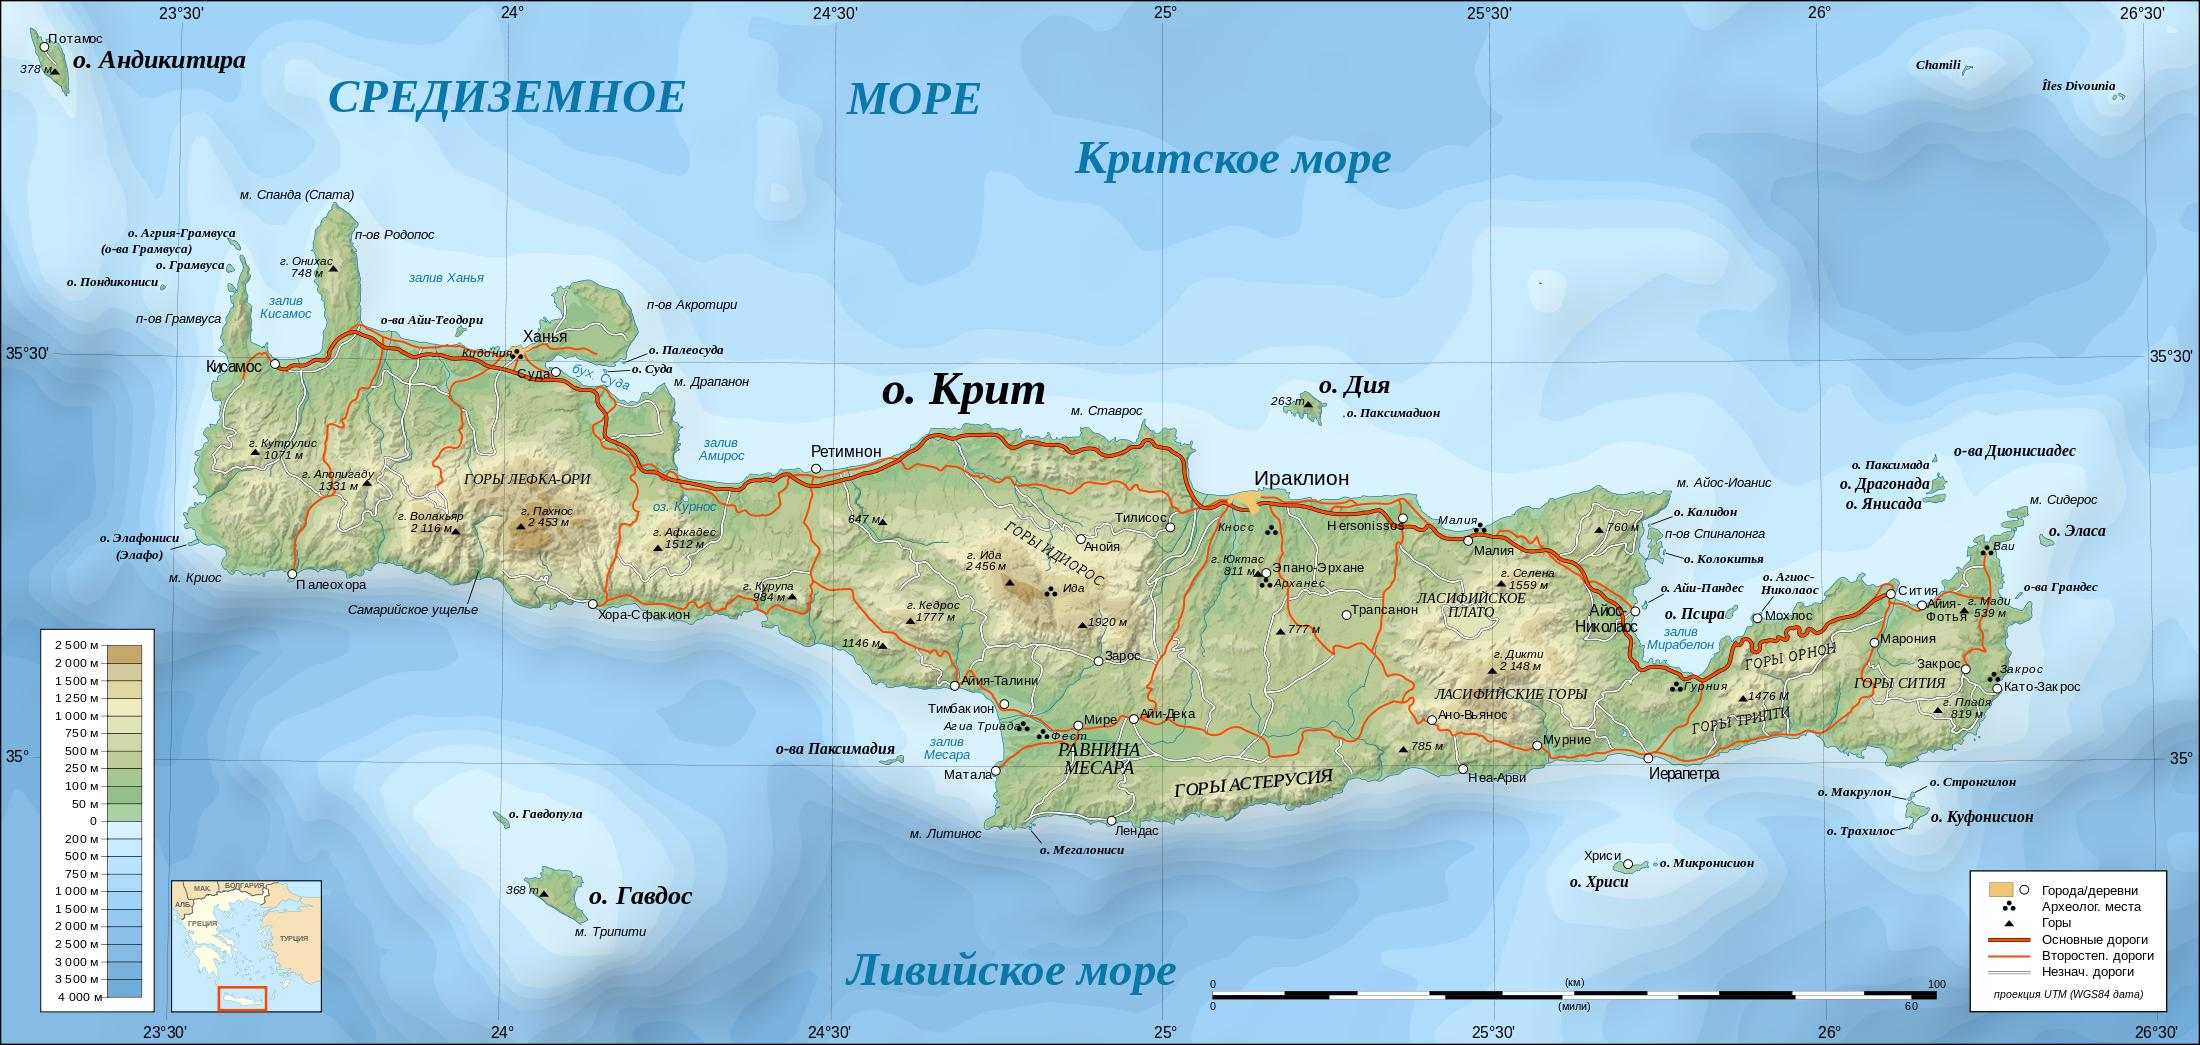 Crete topographic map-ru.jpeg